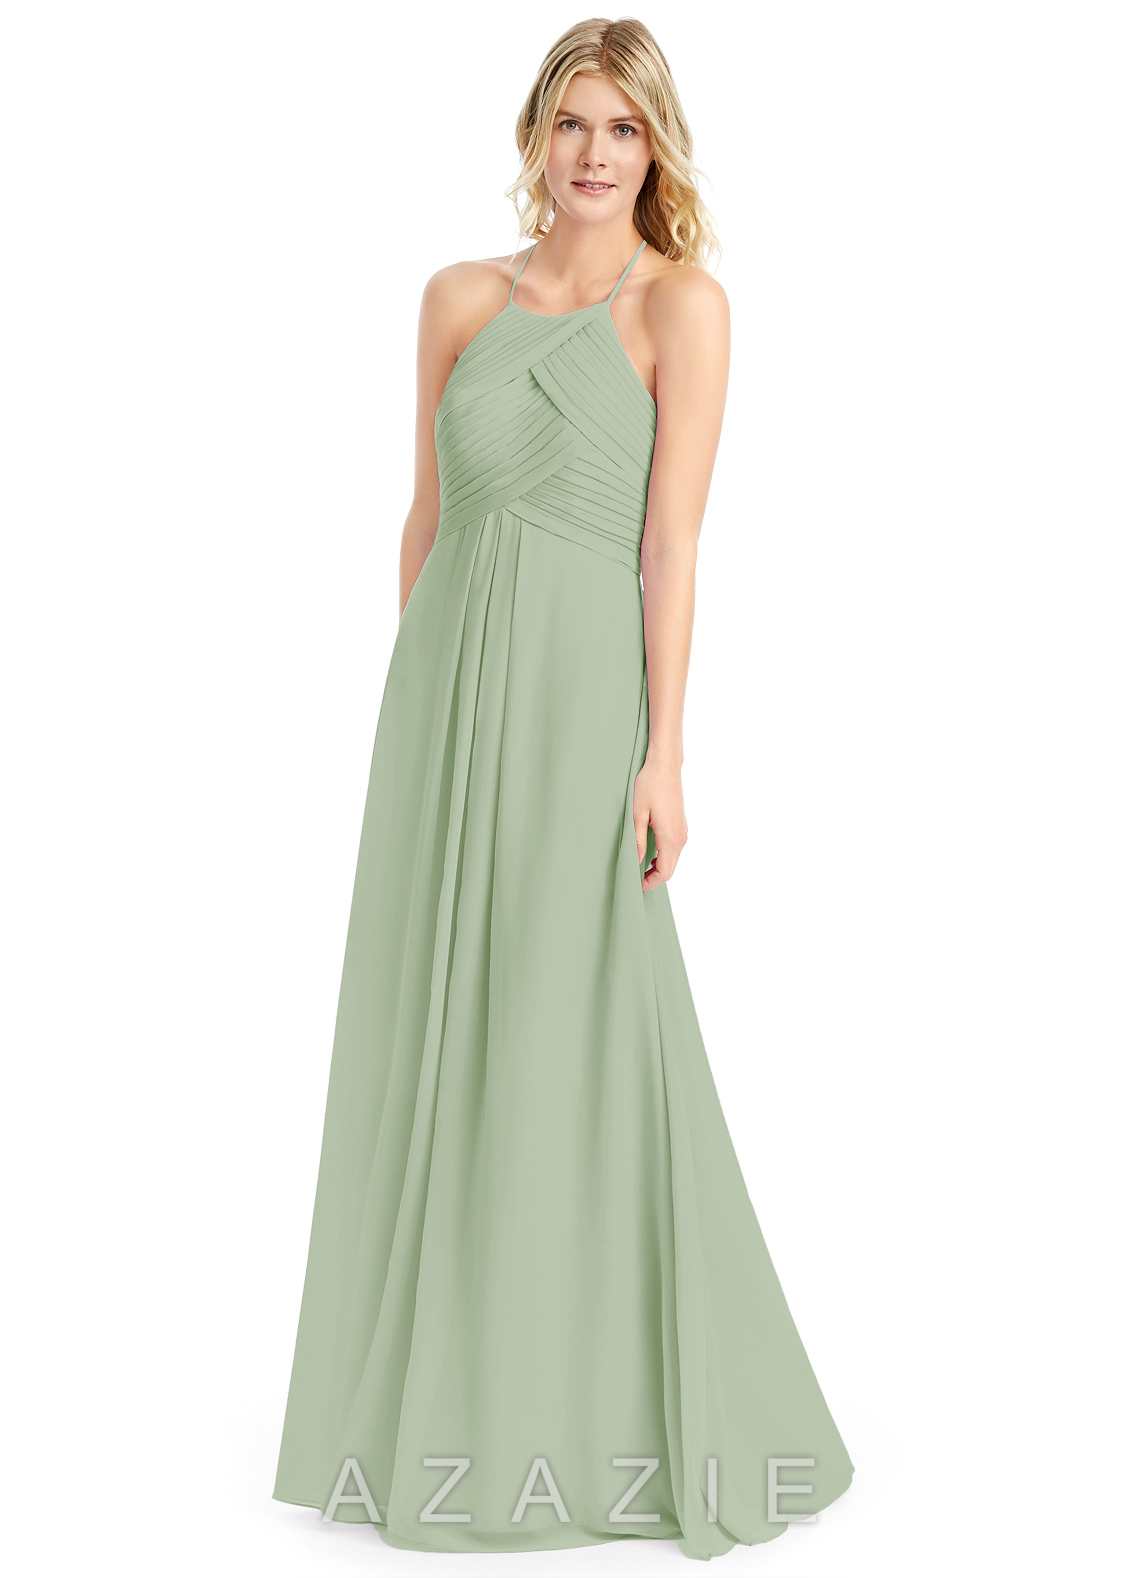 Azazie ginger bridesmaid dress azazie color dusty sage ombrellifo Gallery